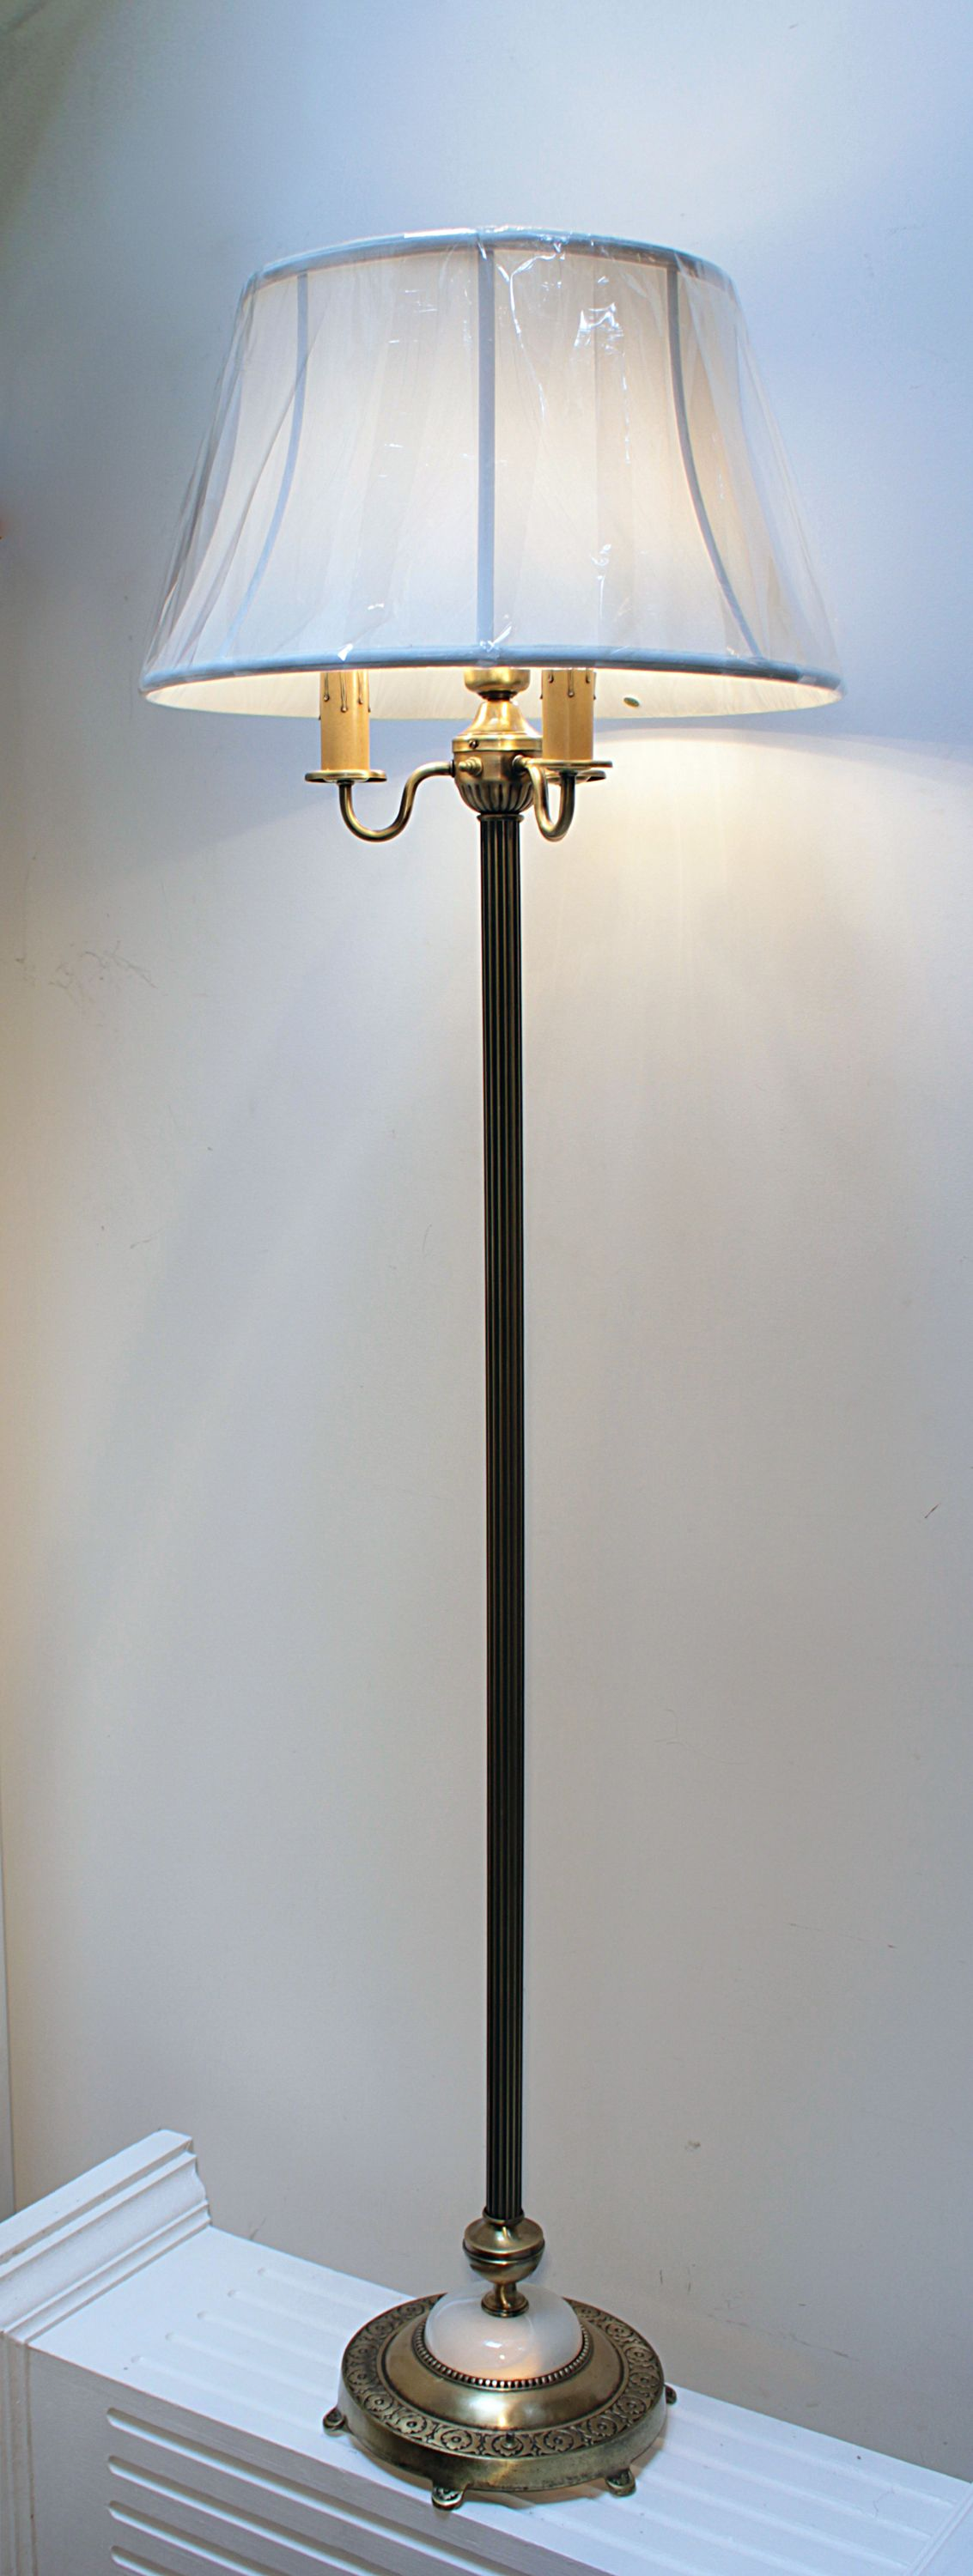 Mogul Base Floor Lamp Google Search Lamp Makeover